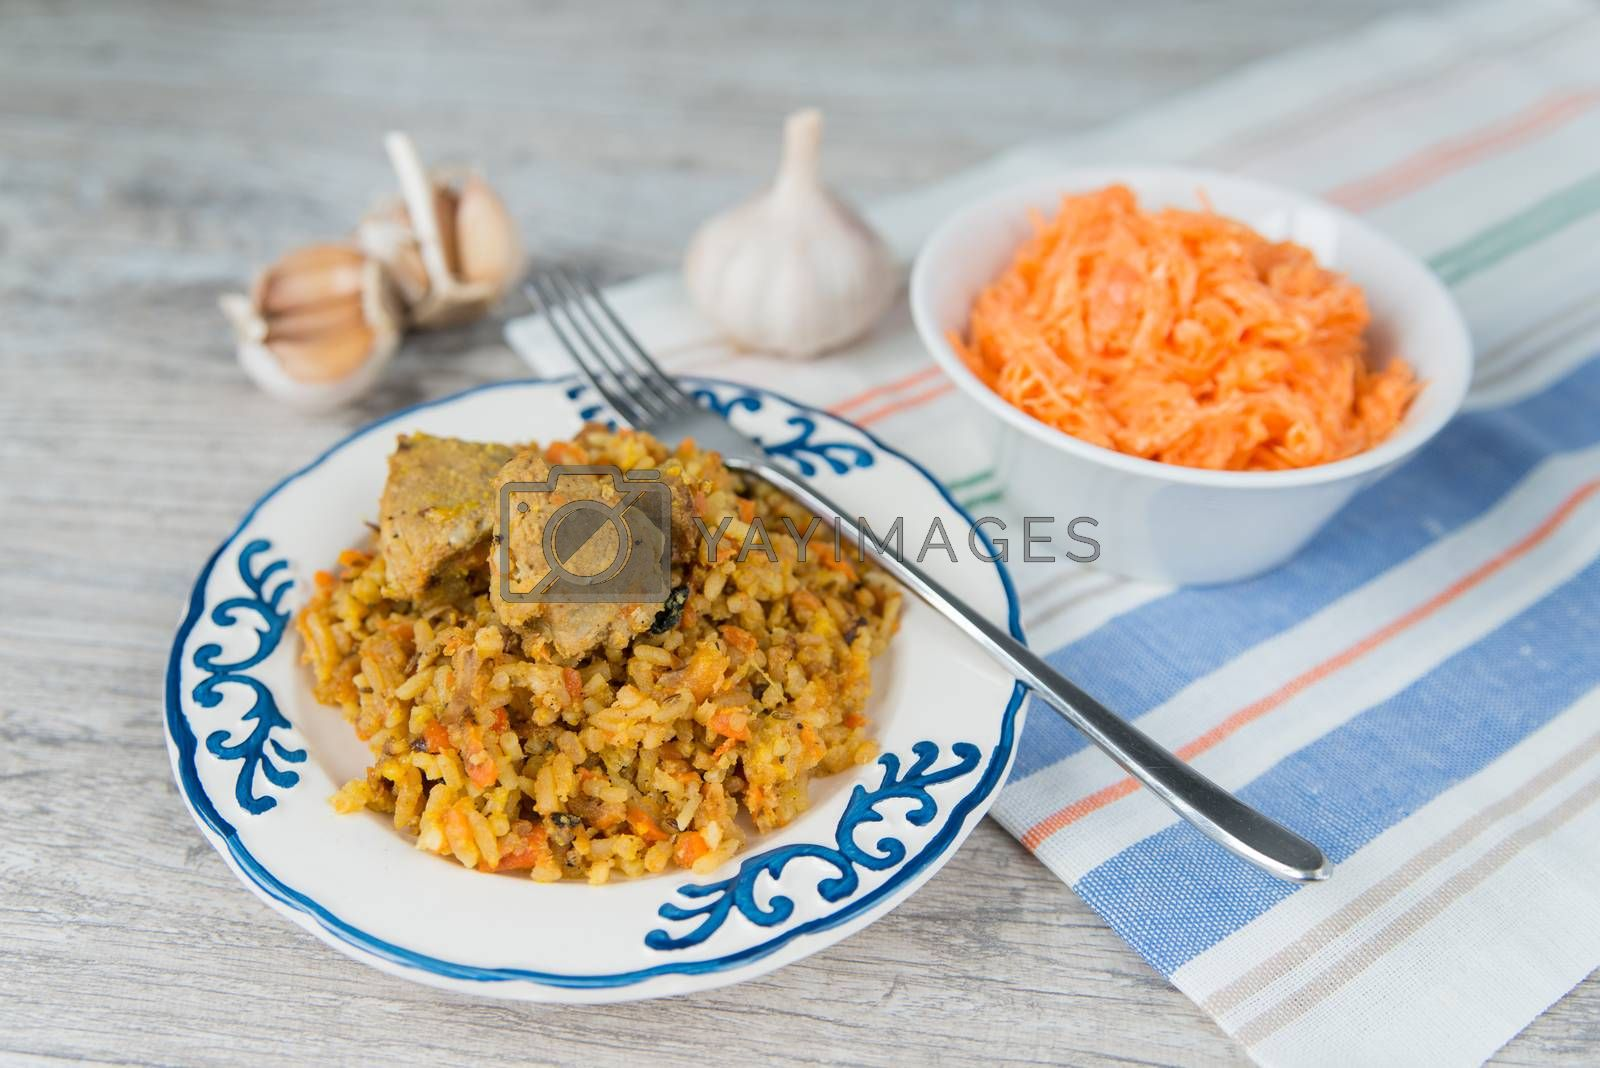 Royalty free image of Plate of rice and meat dish pilau and carrot salad by Linaga